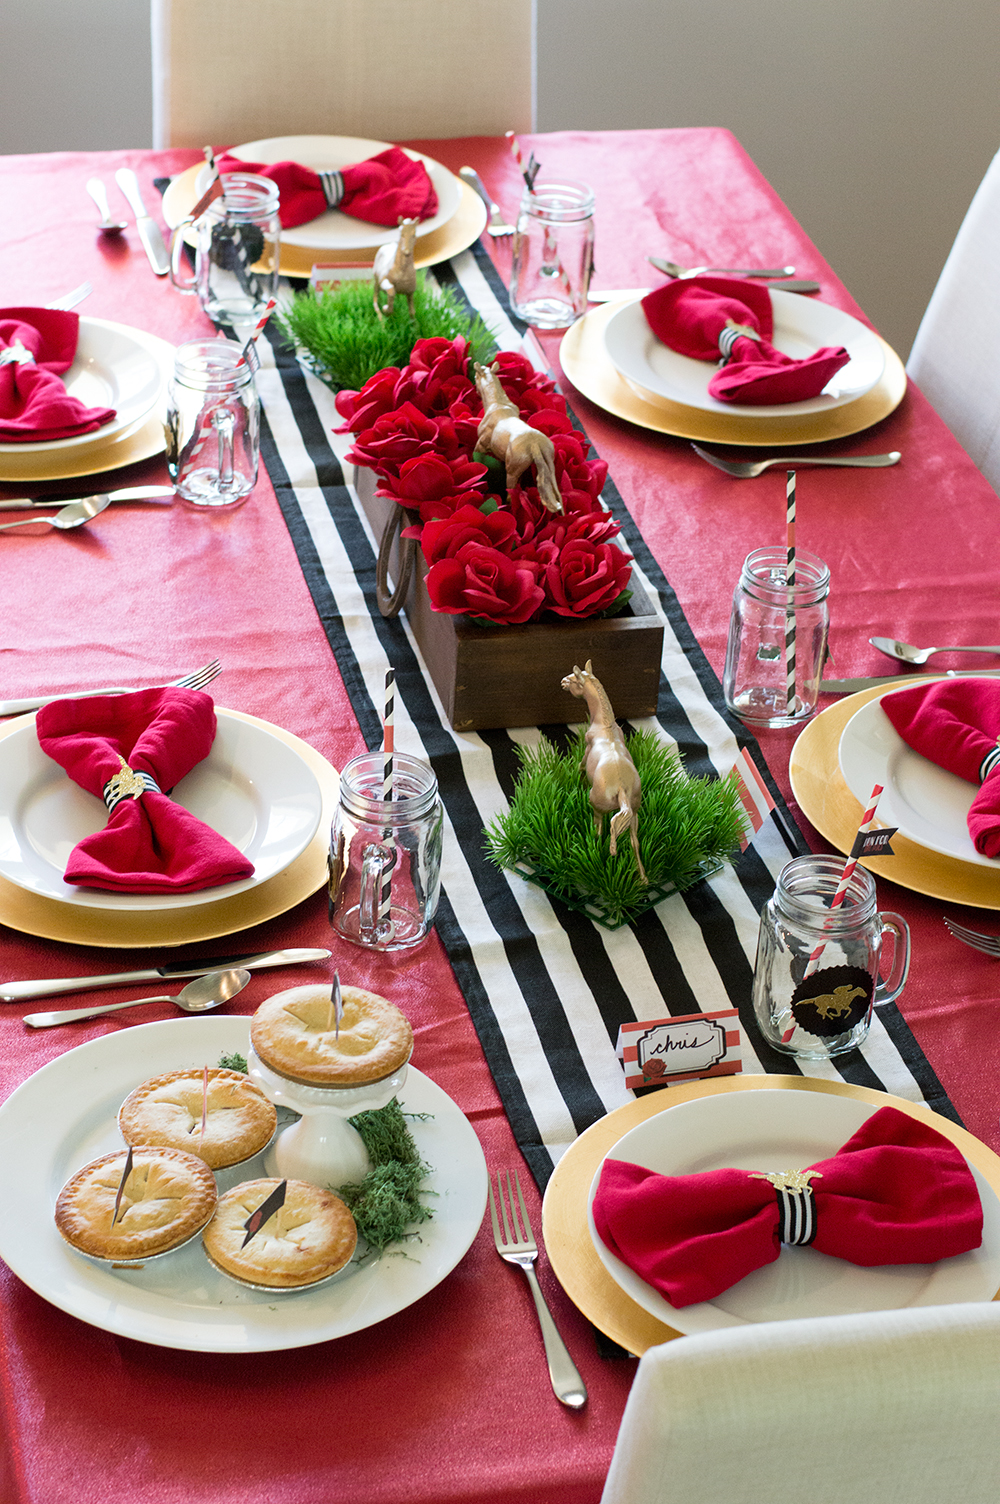 Red tablecloth with black and white striped runner and a rose centerpiece make the perfect Kentucky Derby dinner party setting.